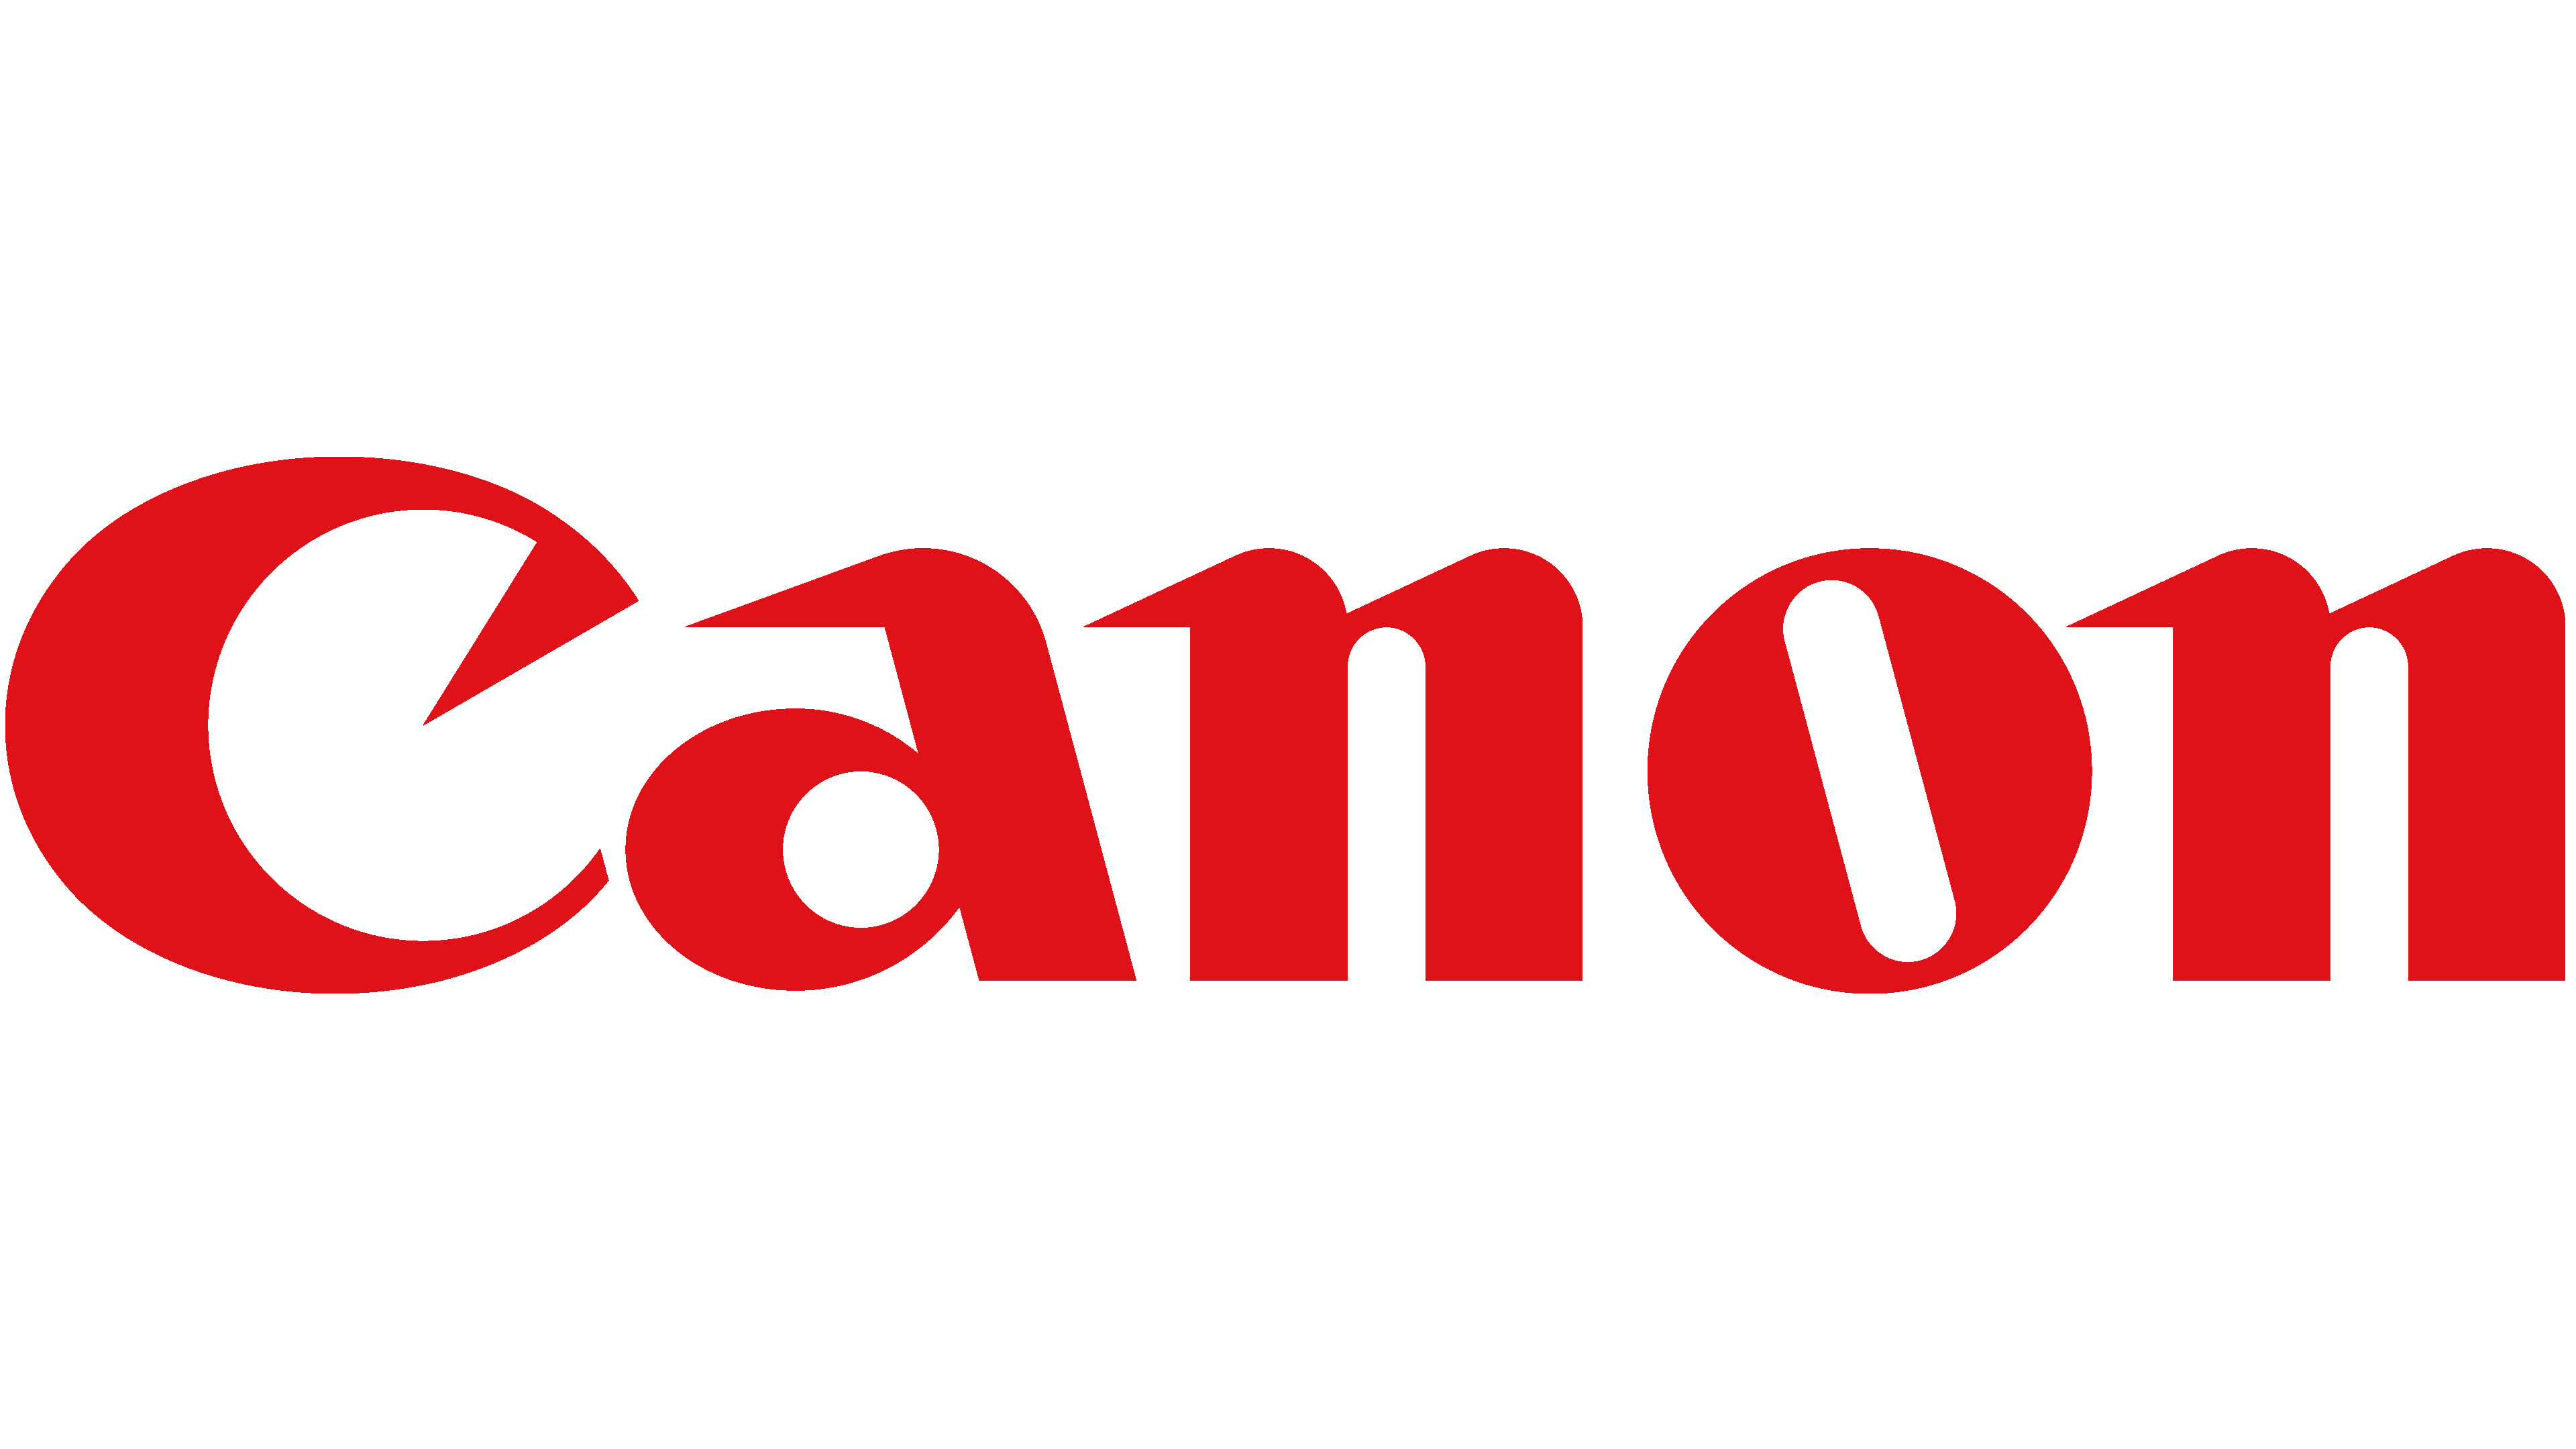 Canon Logo History The Most Famous Brands And Company Logos In The World